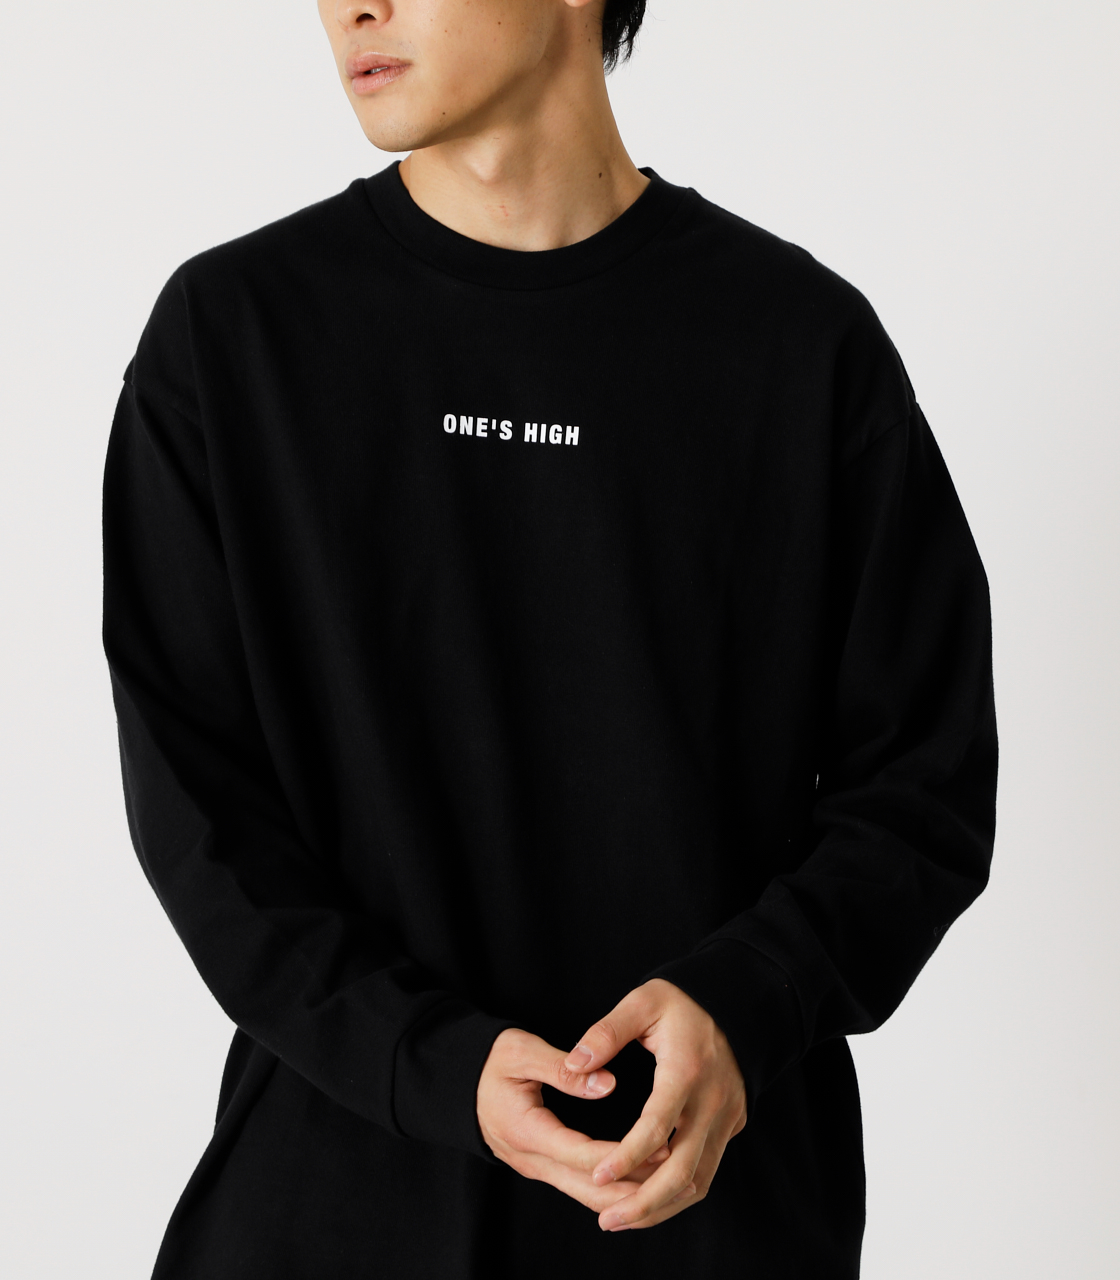 ONE'S HIGH LONG TEE/ワンズハイロングTシャツ 詳細画像 BLK 3